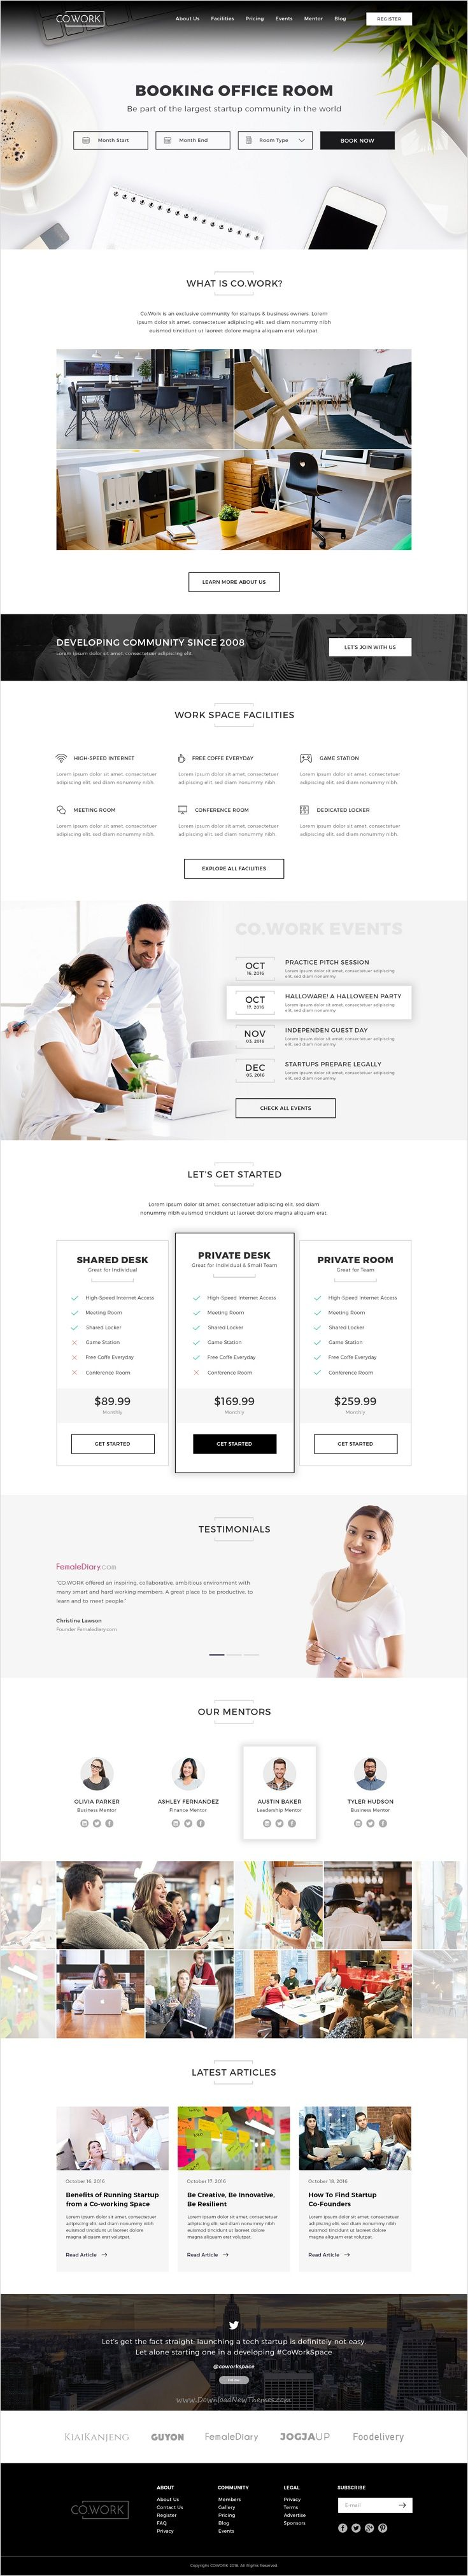 Co.Work is modern and fresh design #Photoshop template for #startups #officeroom Open Office, Coworking Space & Creative Space website download now➩ https://themeforest.net/item/cowork-open-office-creative-space-psd-template/18401389?ref=Datasata